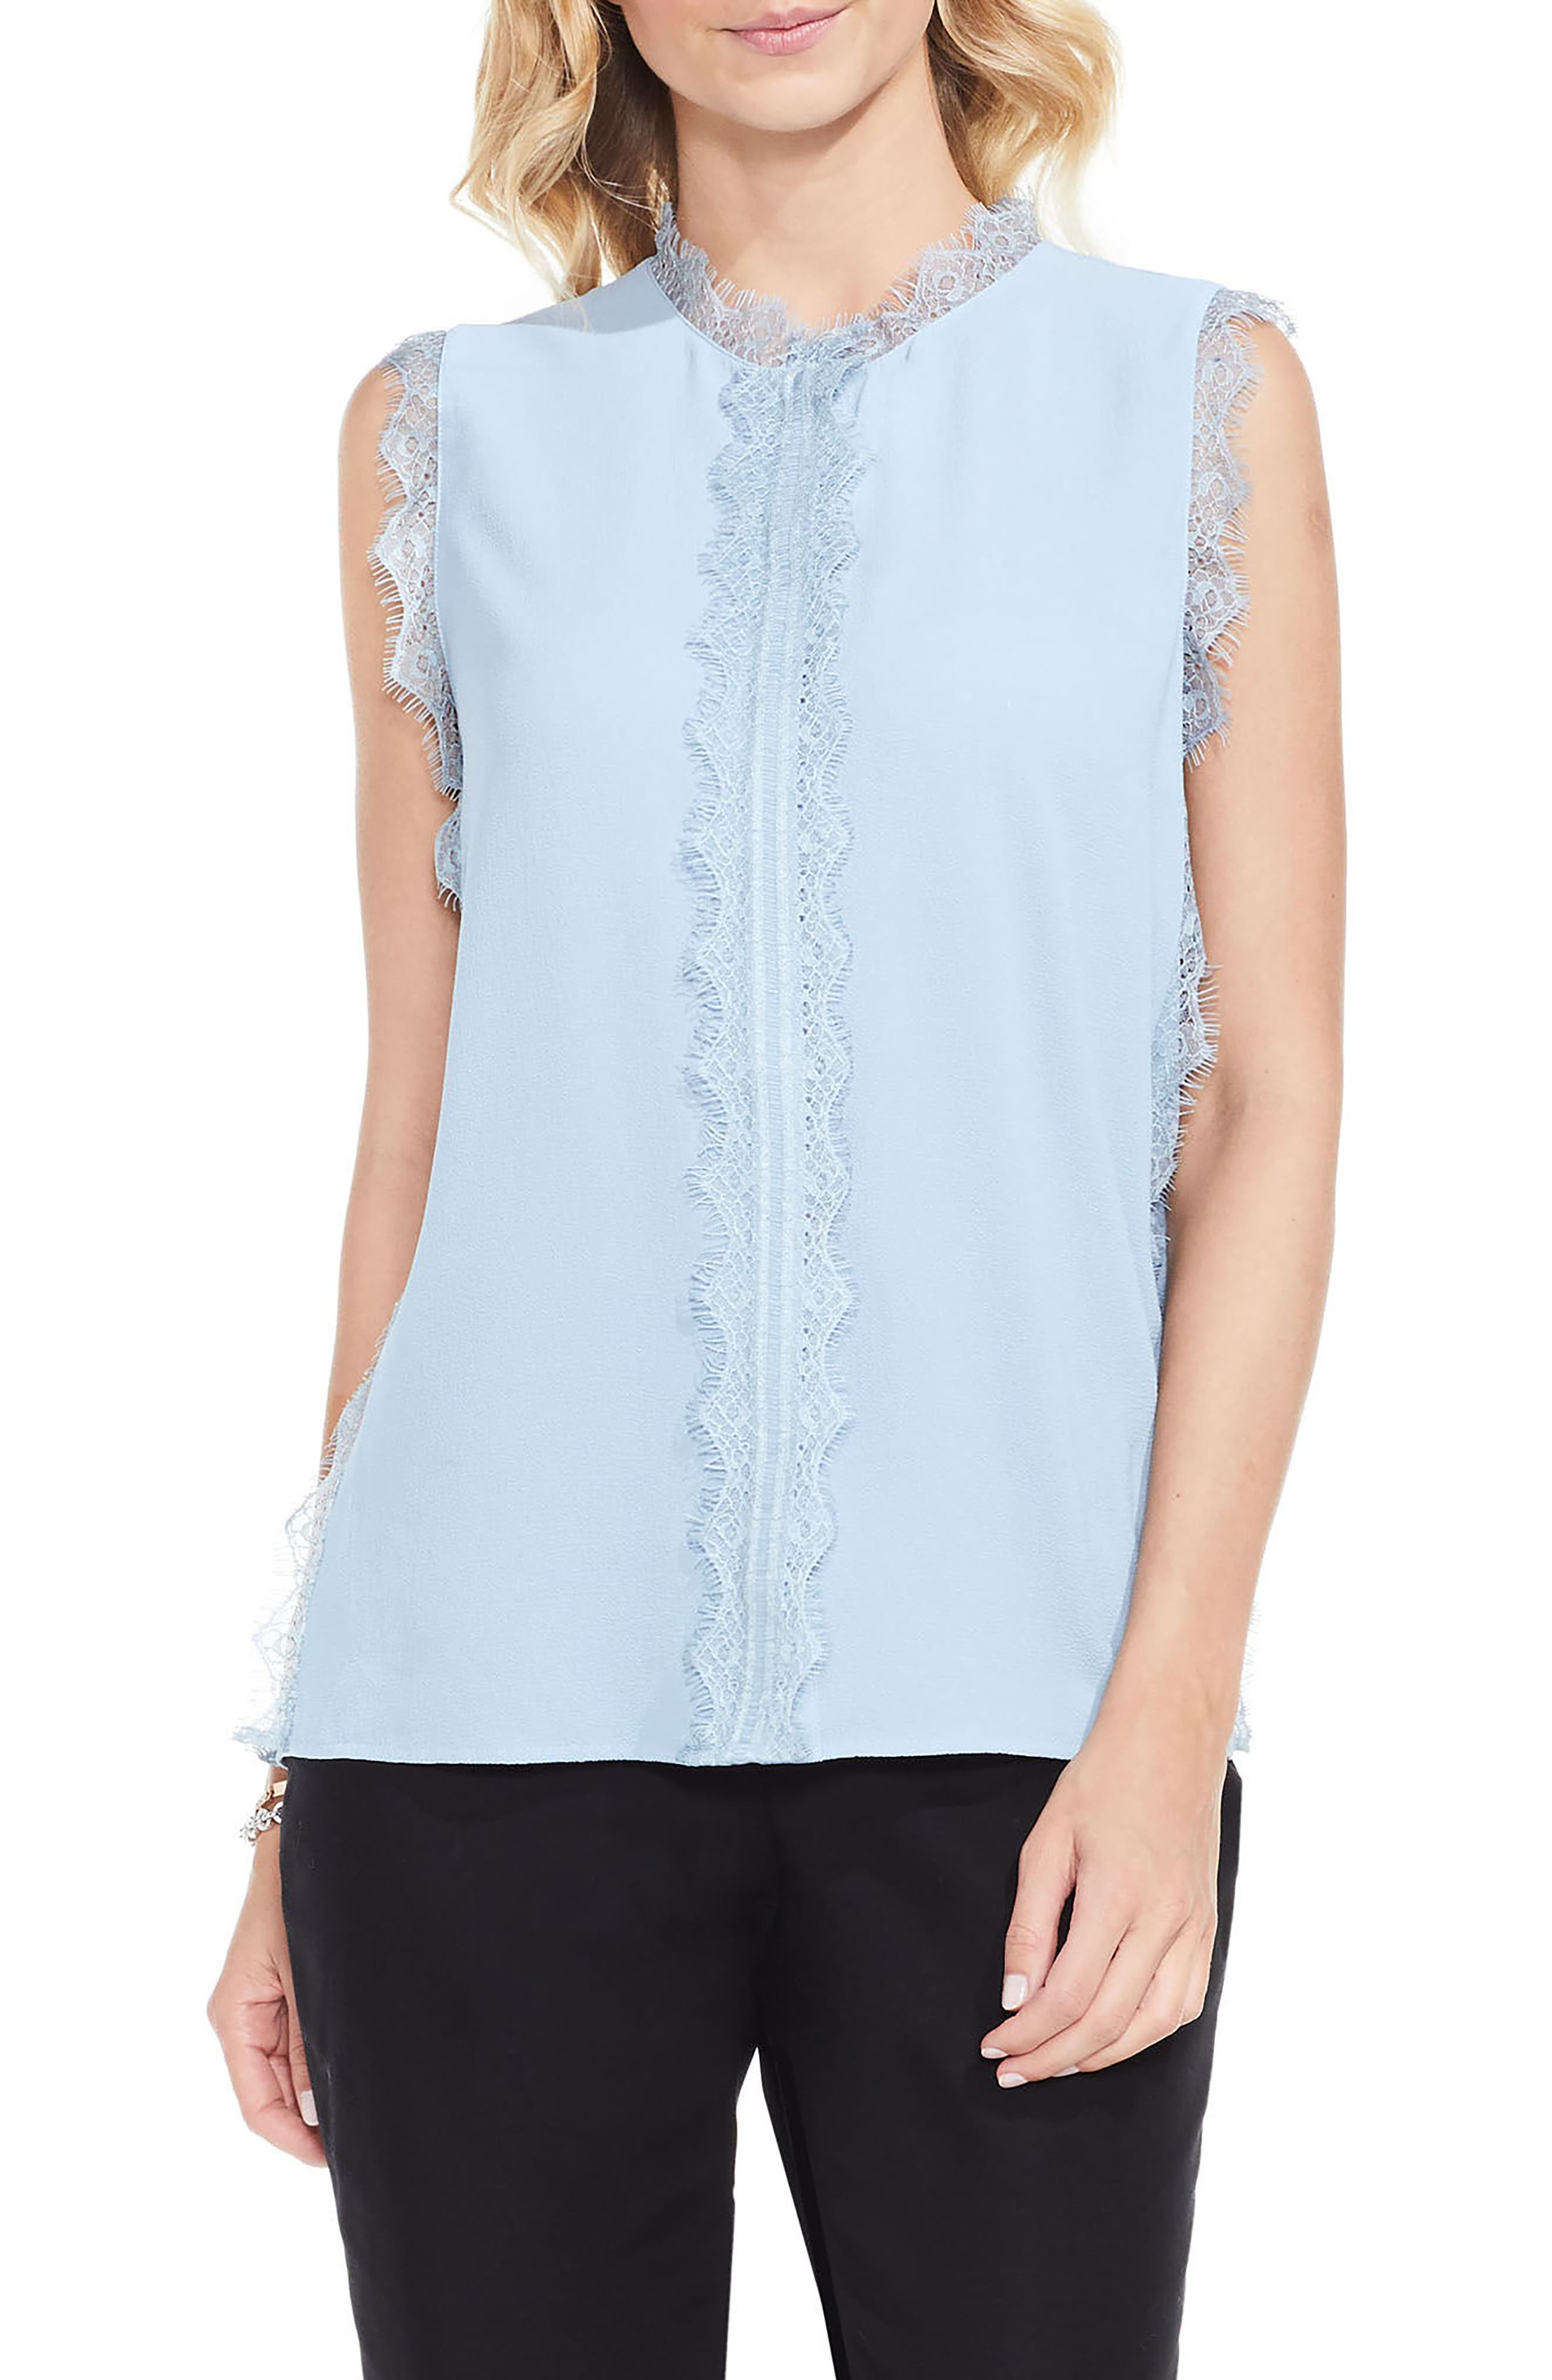 Vince Camuto Lace Trim Sleeveless Blouse